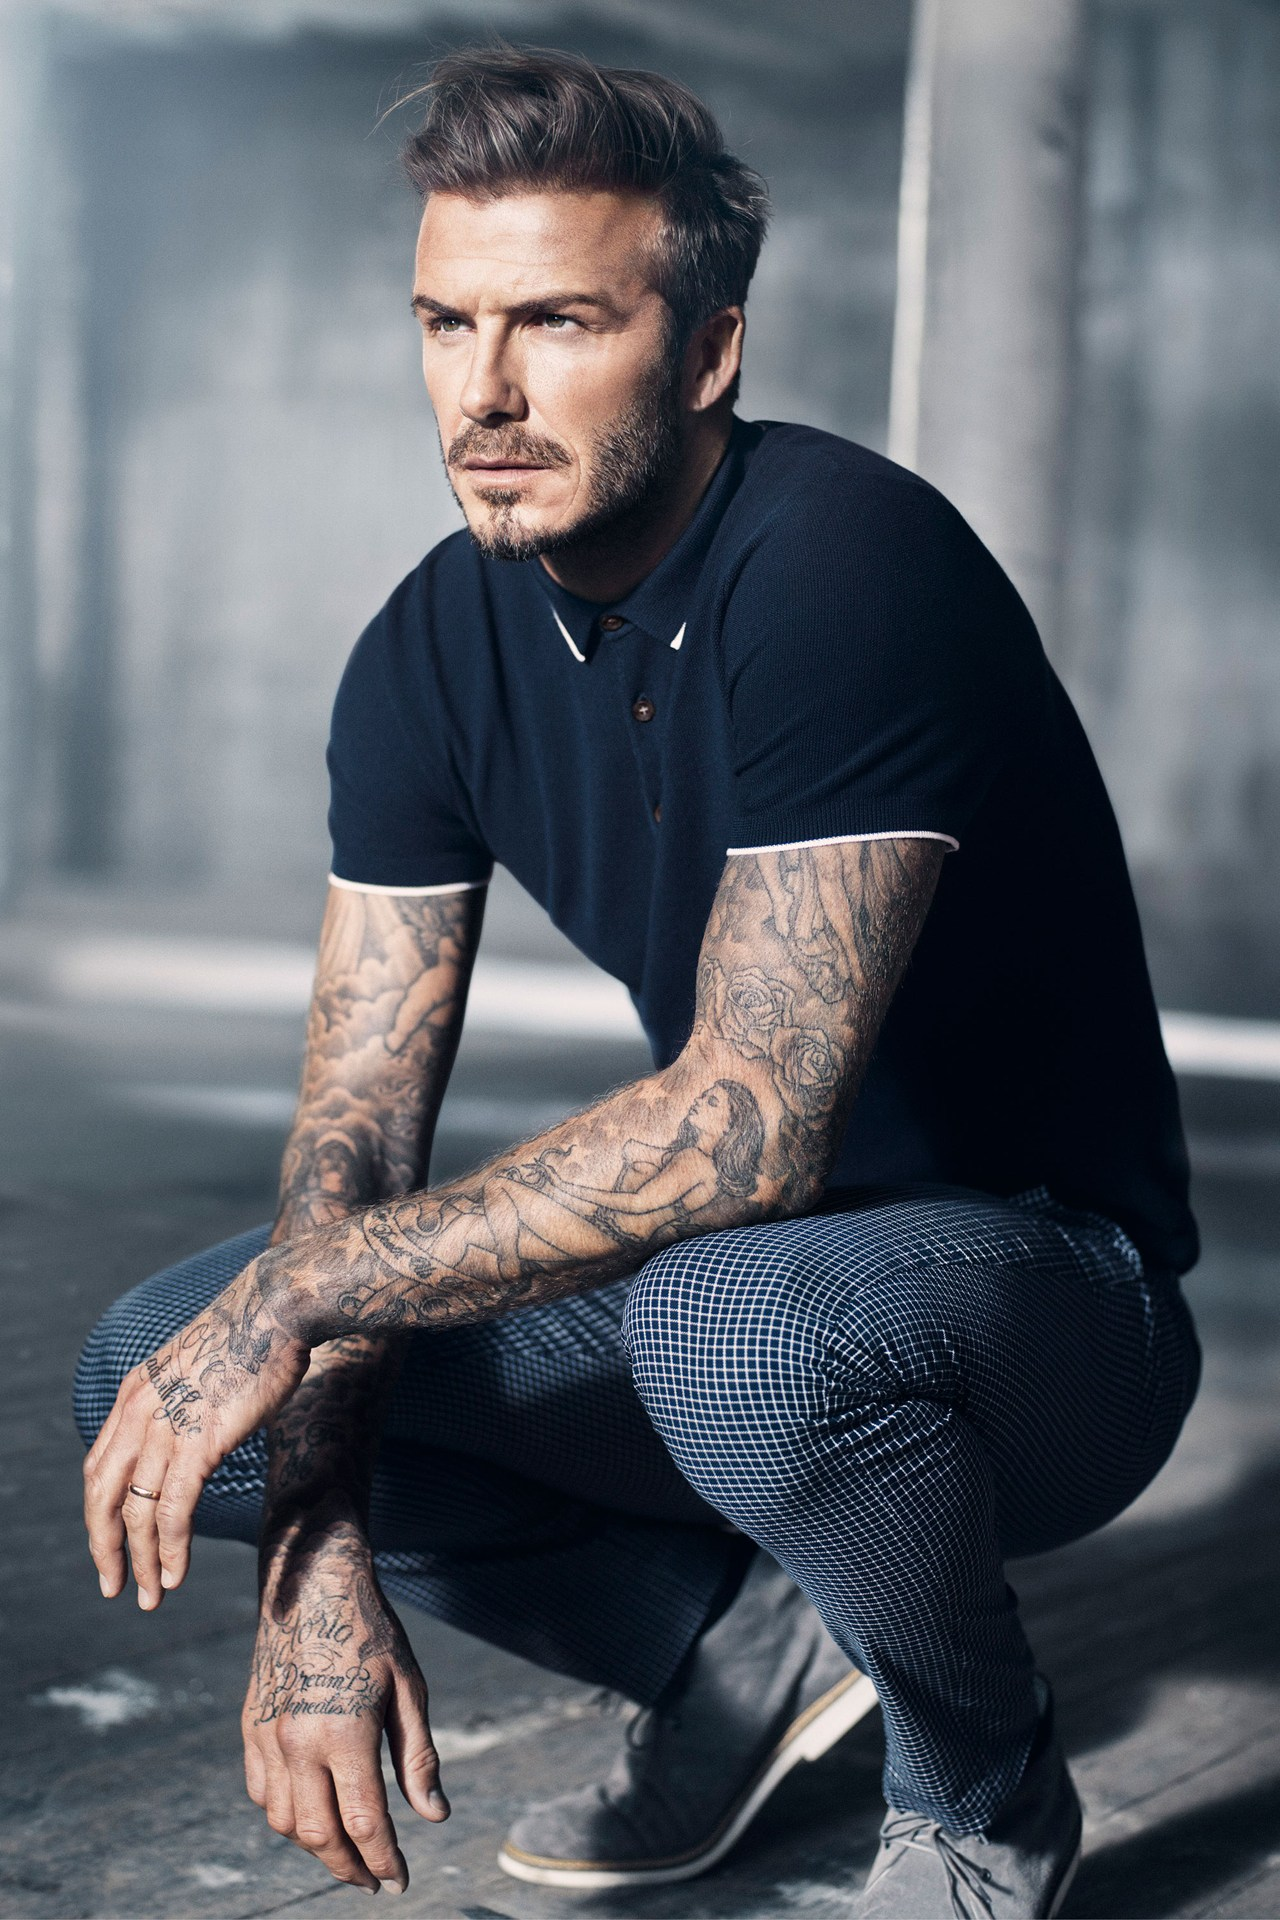 David-Beckham-HM-7-Vogue 20Jan15 pr_b_1280x1920